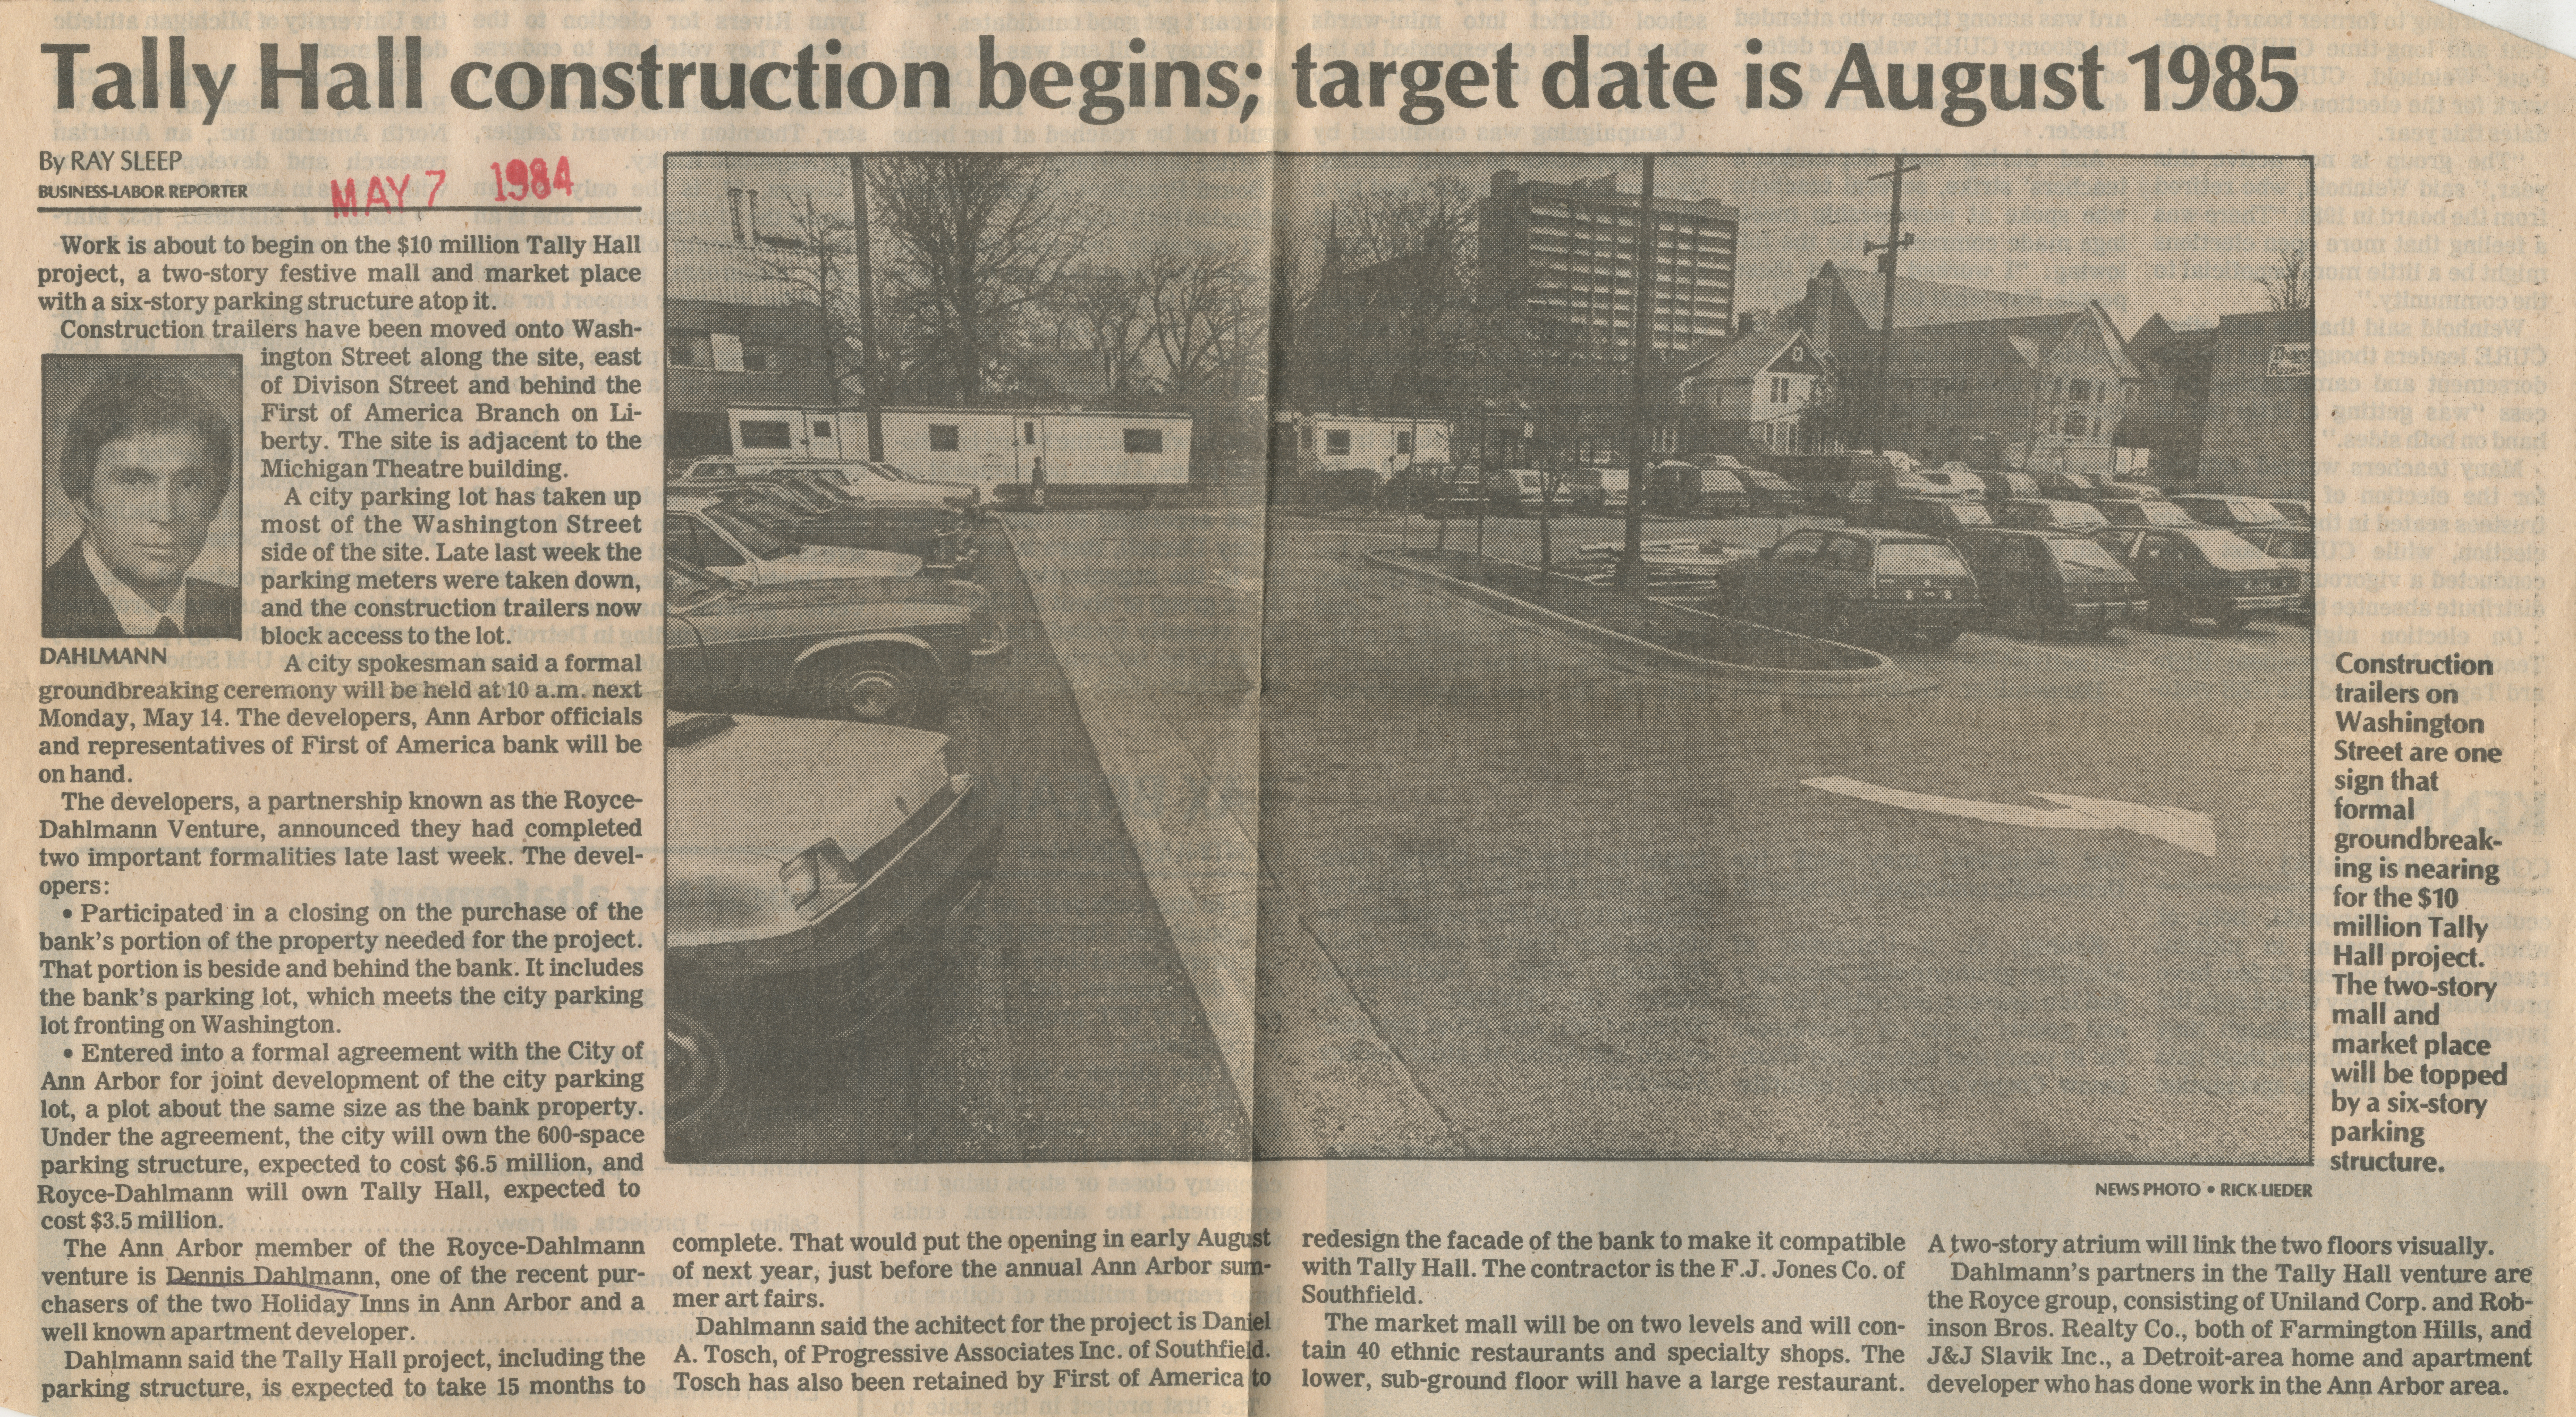 Tally Hall construction begins; target date is August 1985 image